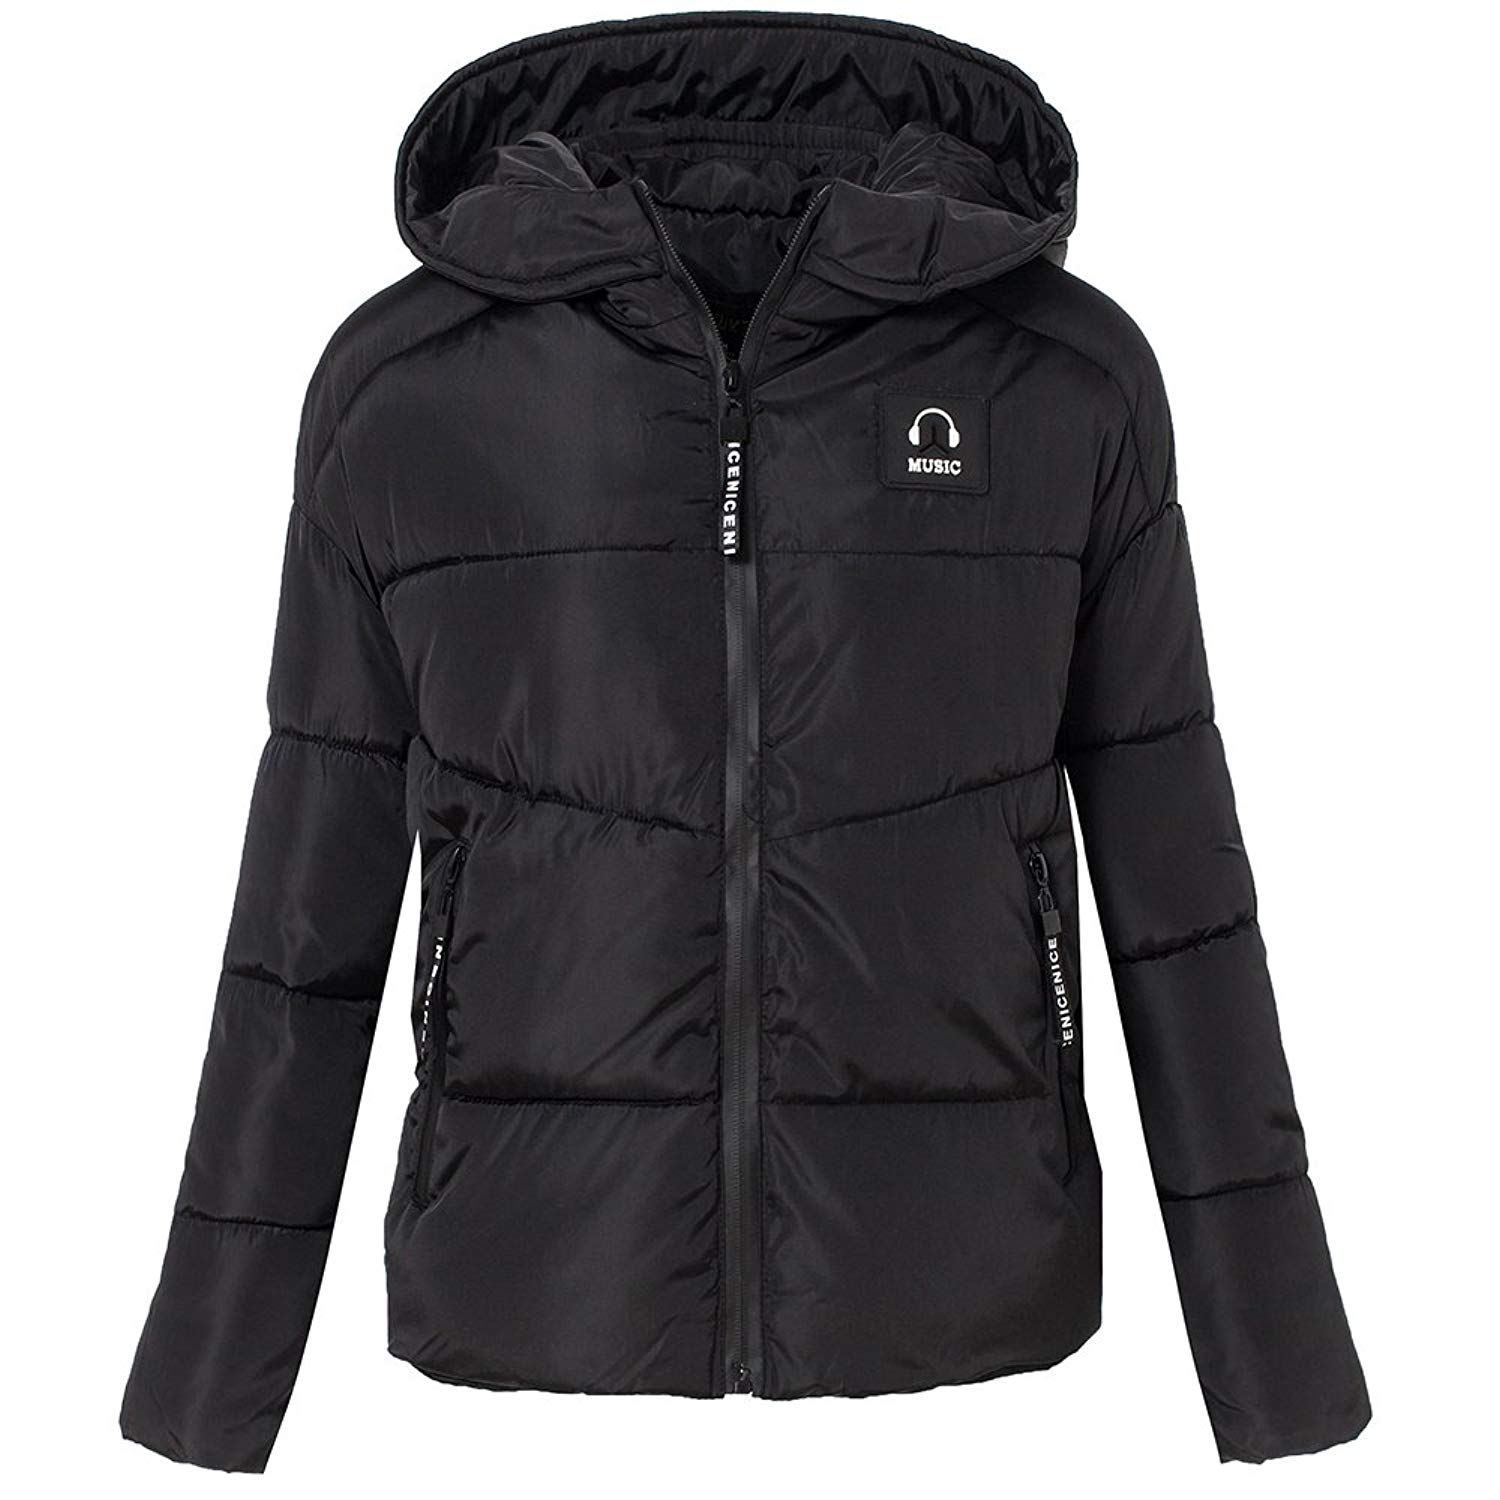 2b4e4110607 Get Quotations · Womens Thick Quilted Puffer Jacket Hooded Cotton Padded  Jacket Winter Outerwear Parka Alternative Coats for Women